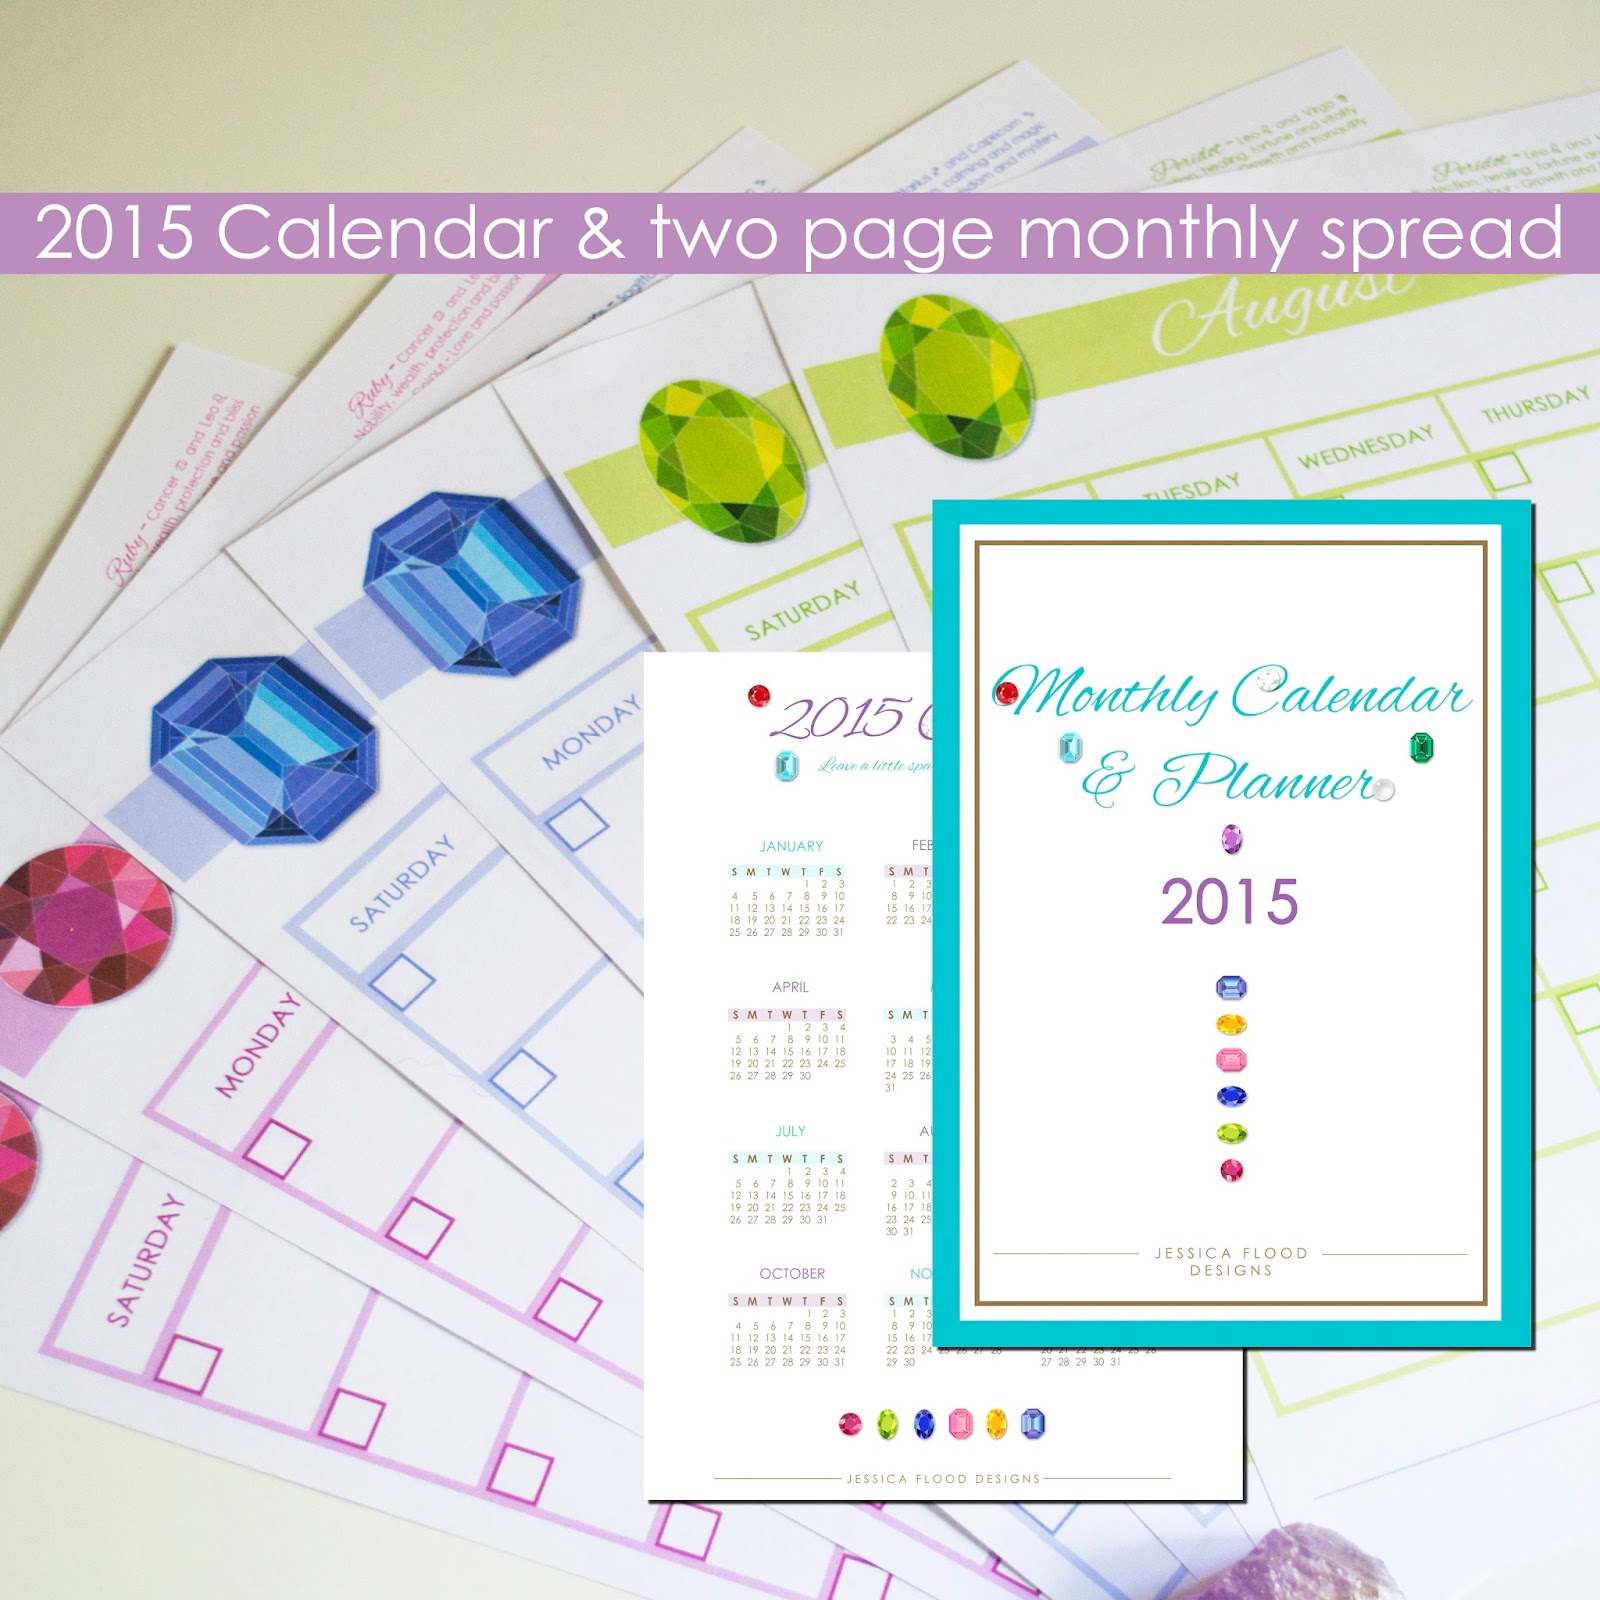 https://www.etsy.com/listing/202841727/2015-calendar-planner-monthly-planner?ref=shop_home_active_3